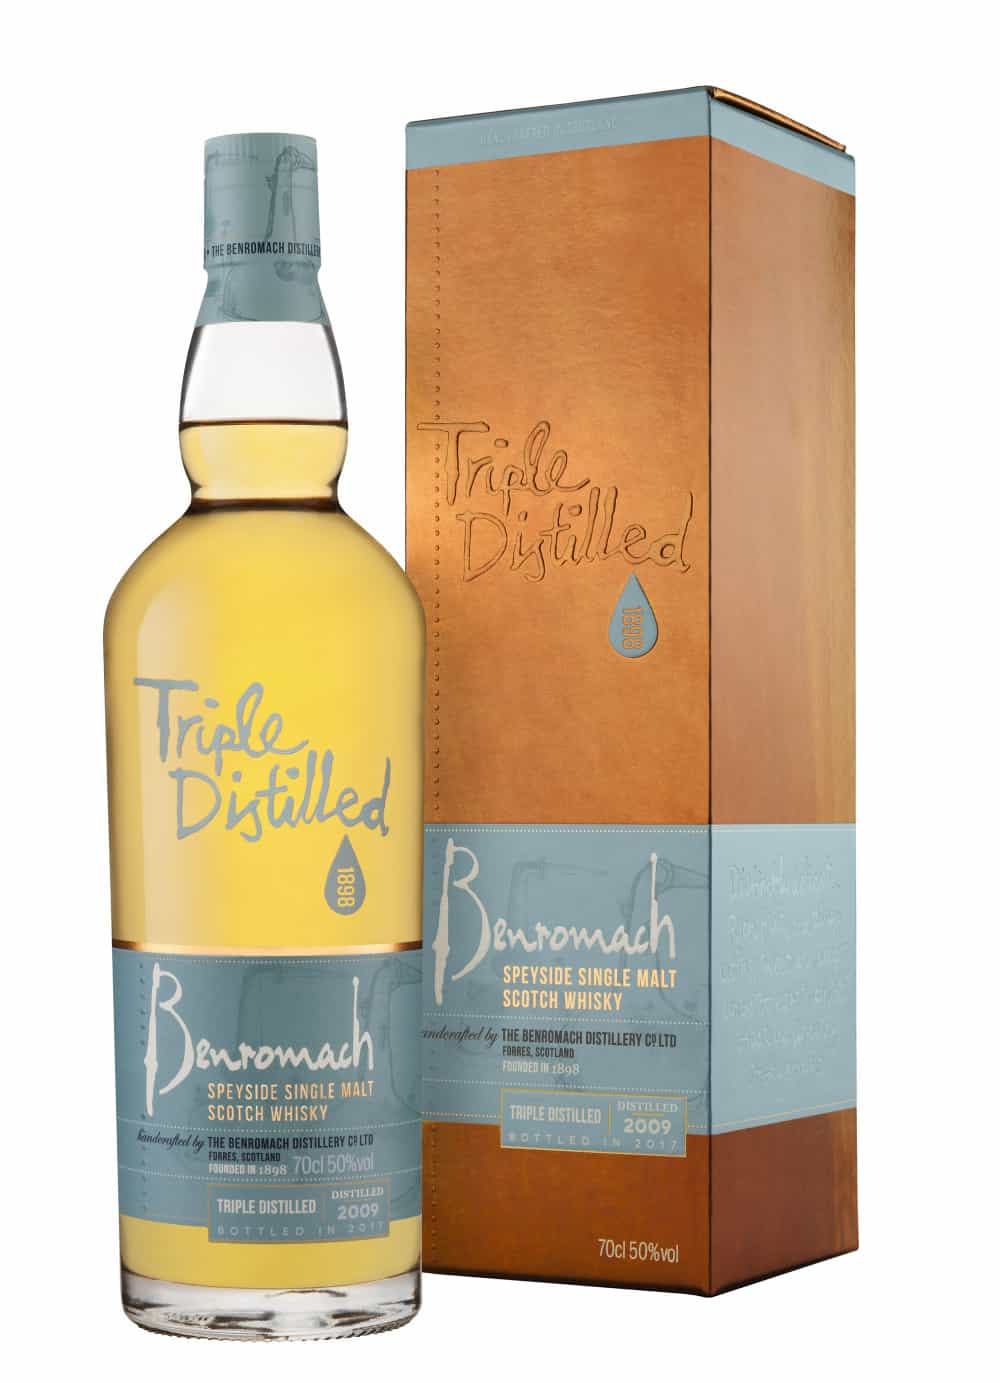 Benromach Triple